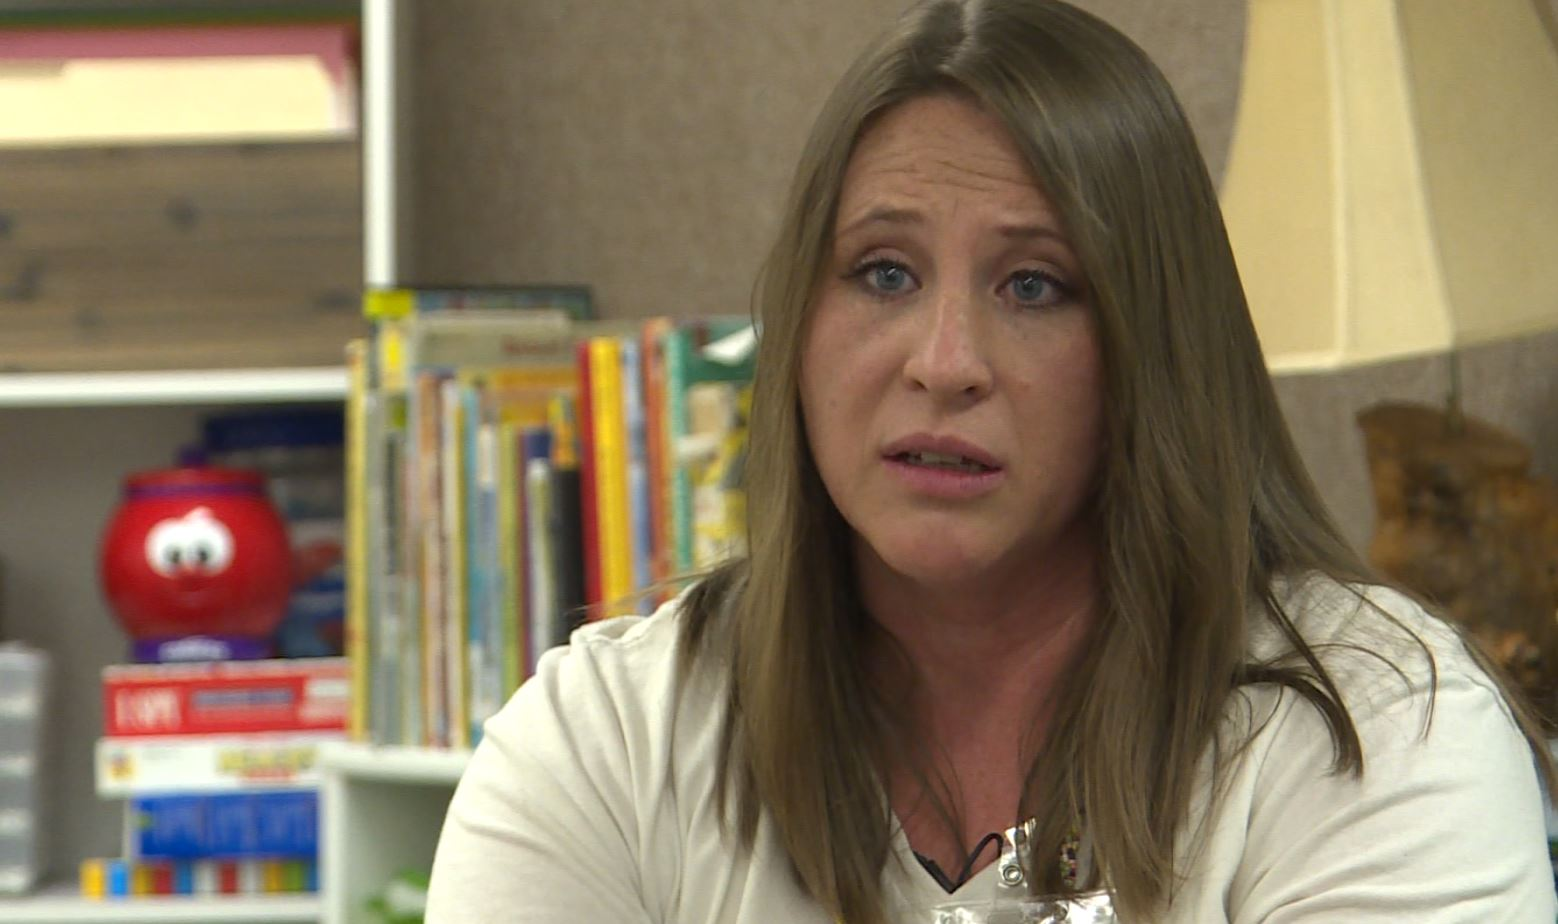 J.R. Smith Elementary School teacher Amanda Blazzard{ }(Photo: KUTV)